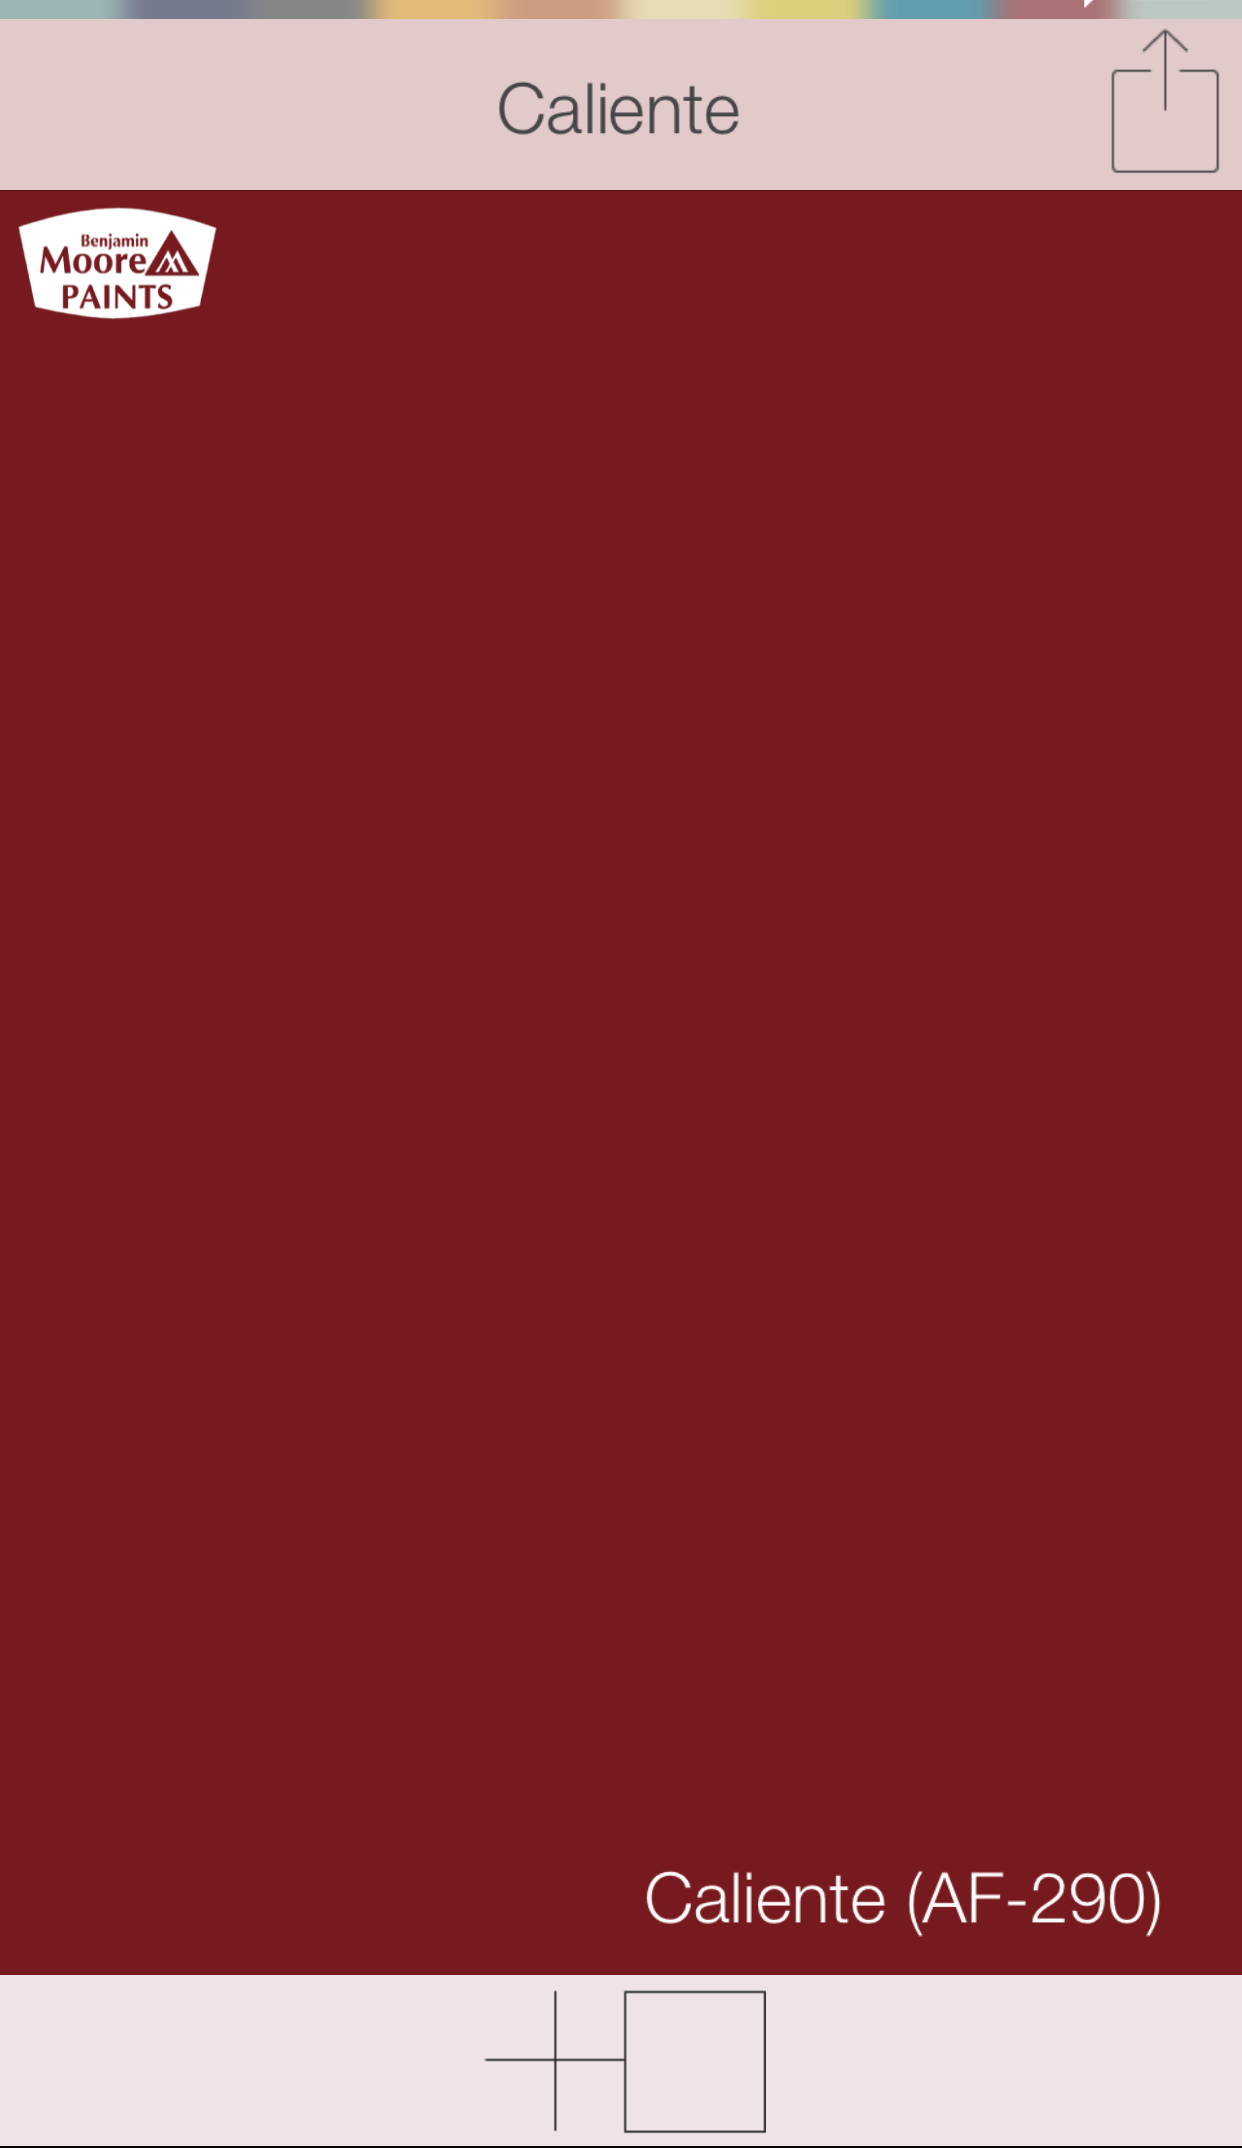 Red Front Door Colors Caliente Af 290 Benjamin Moore Paints Swatchdeck Use The Search Function In To Access Entire Collection Of